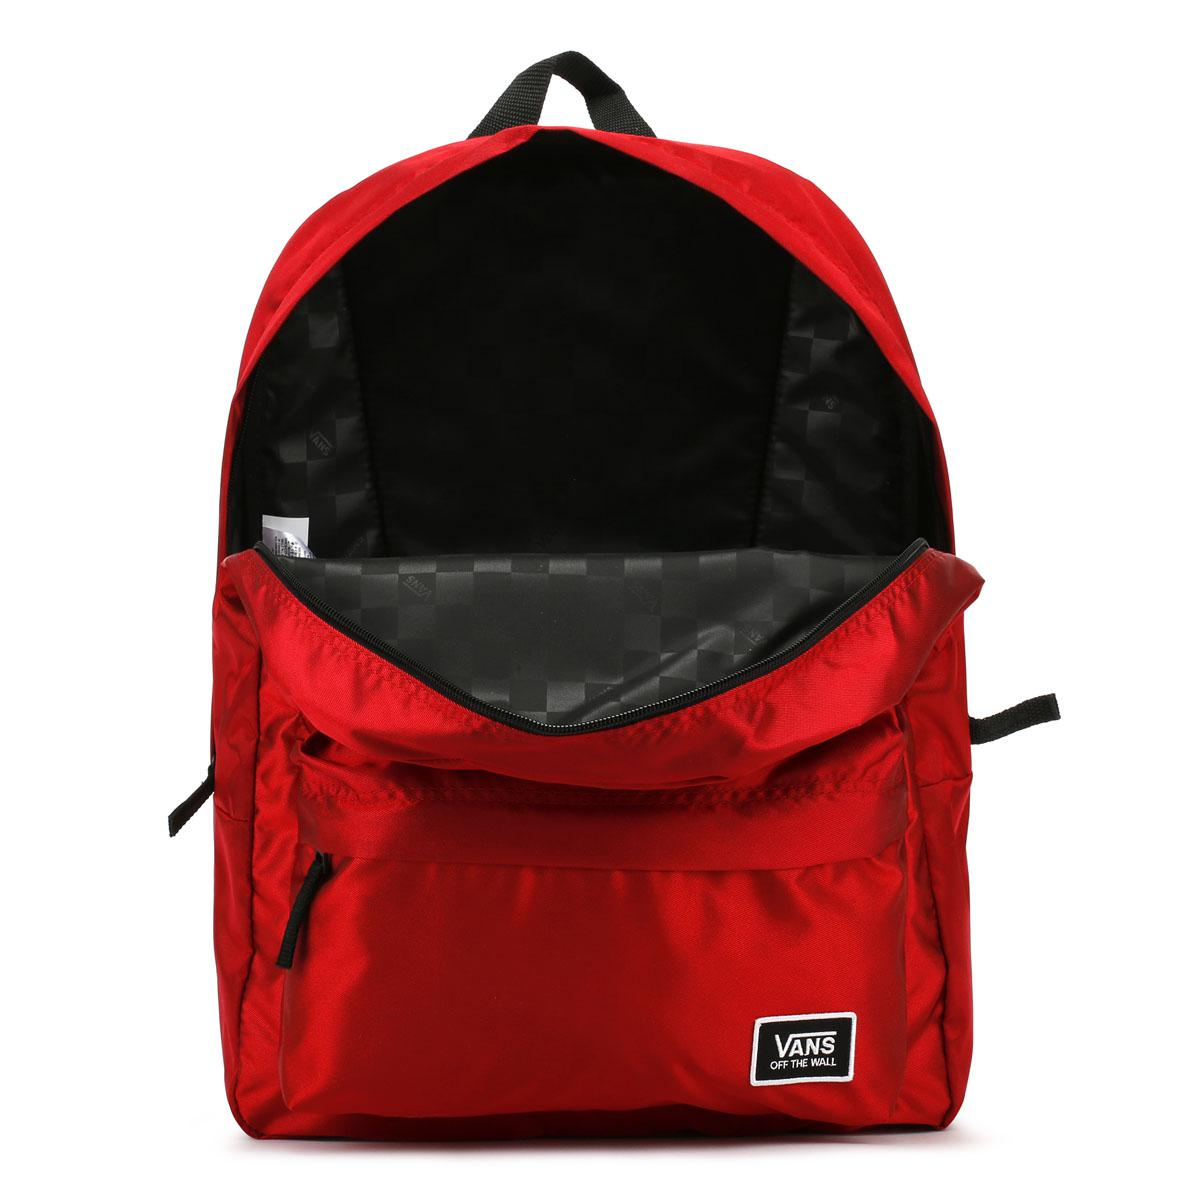 d0bae1d0281e0 Lyst - Vans Deana Iii Racing Red Backpack in Red